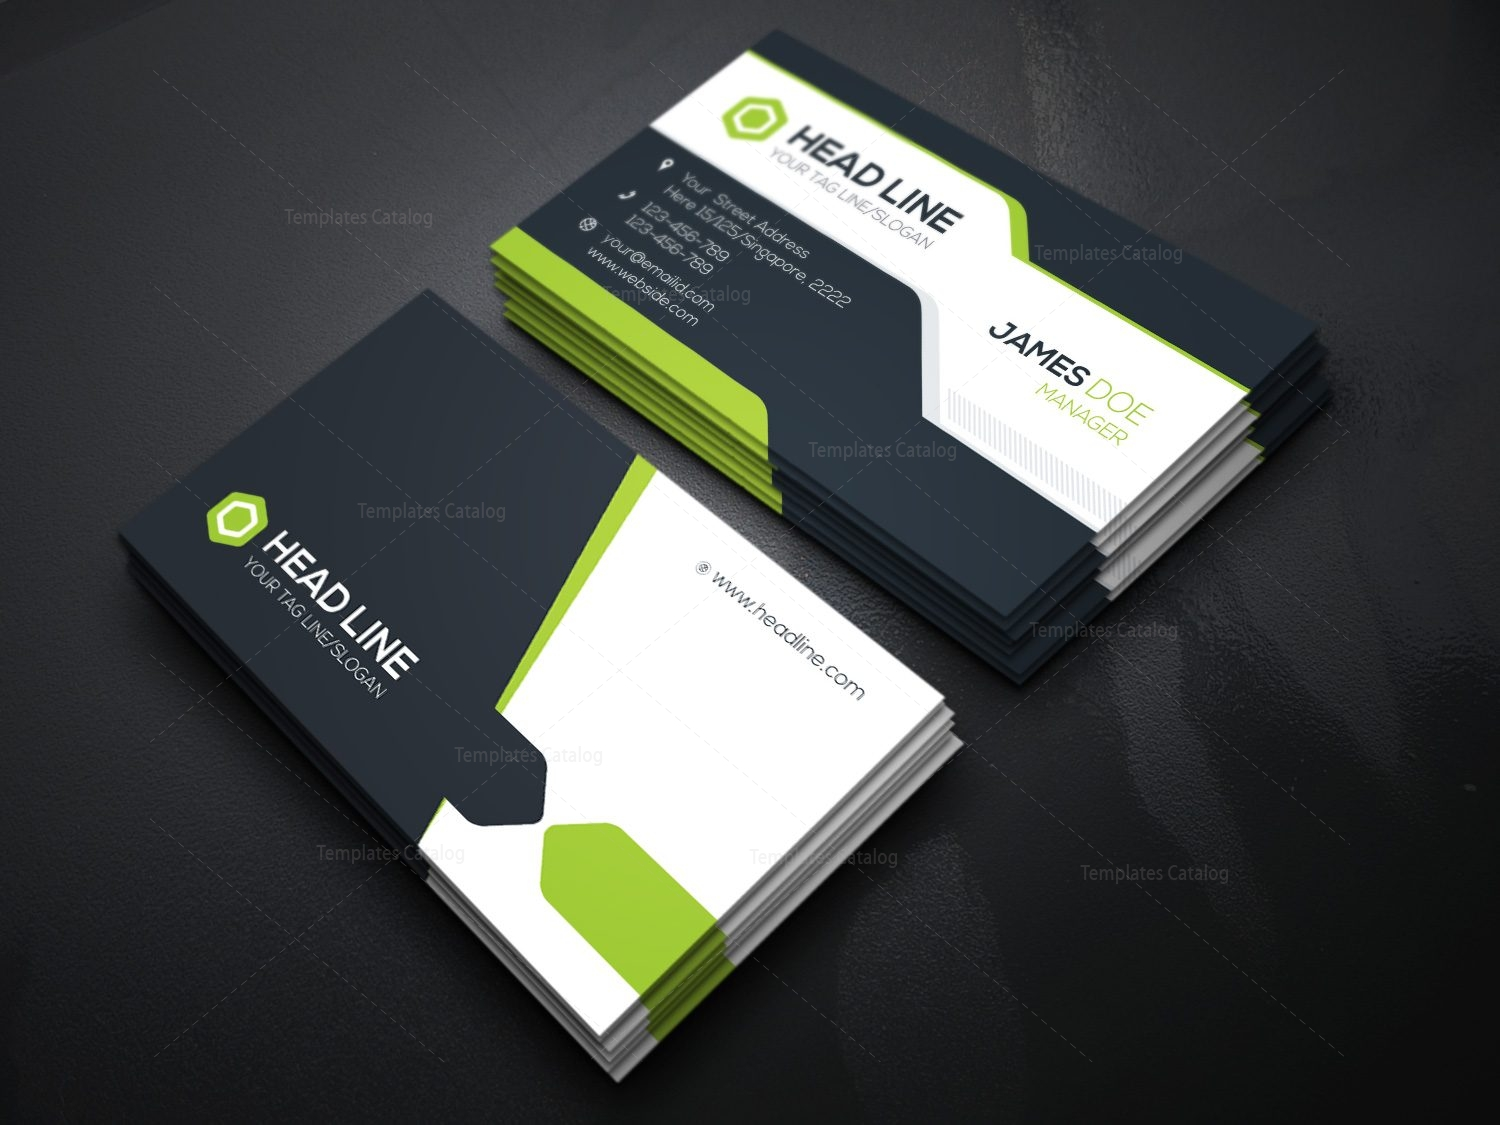 Stylish Visiting Card Template 000085 Template Catalog